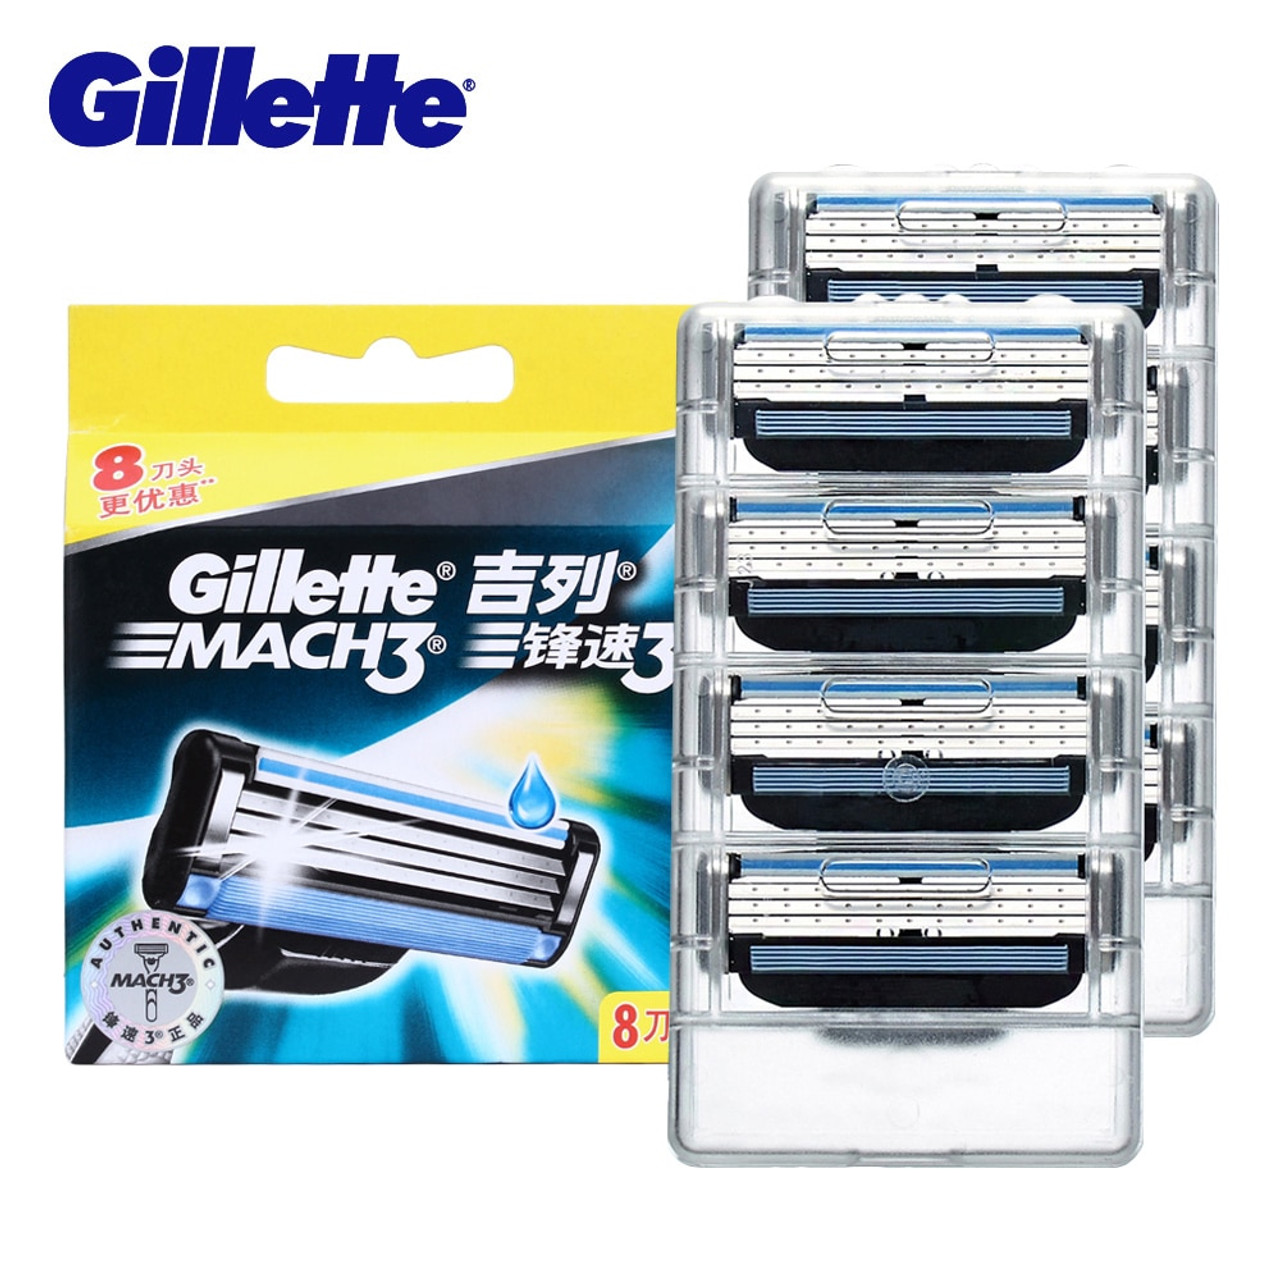 Gillette Mach 3 Layers Men Face Shaving Manual Replacement Razors Blades Set